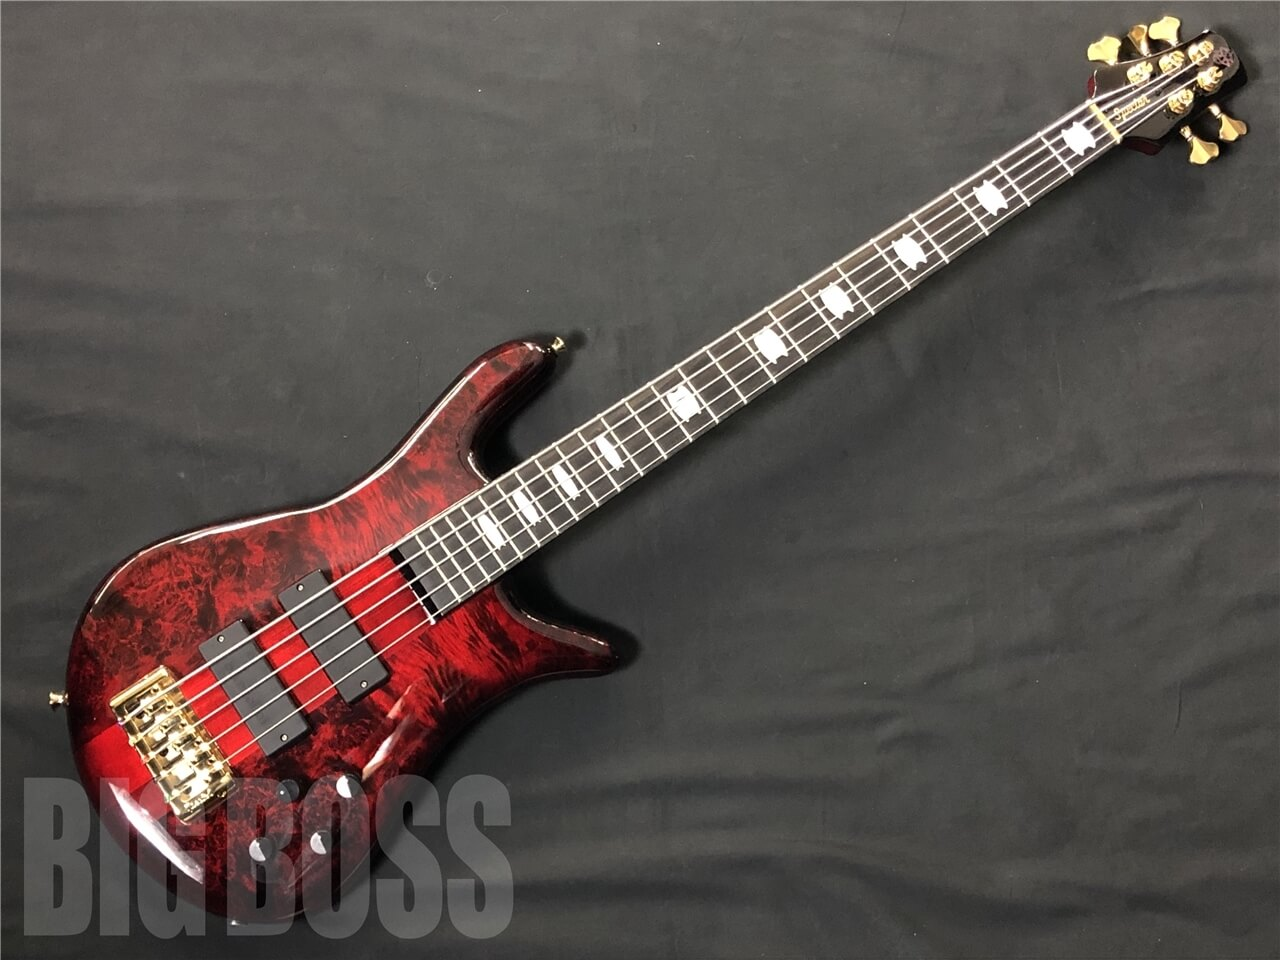 【即納可能】SPECTOR EURO 5 LT Poplar Burl Limited (Red Fade Gloss) #NB16229